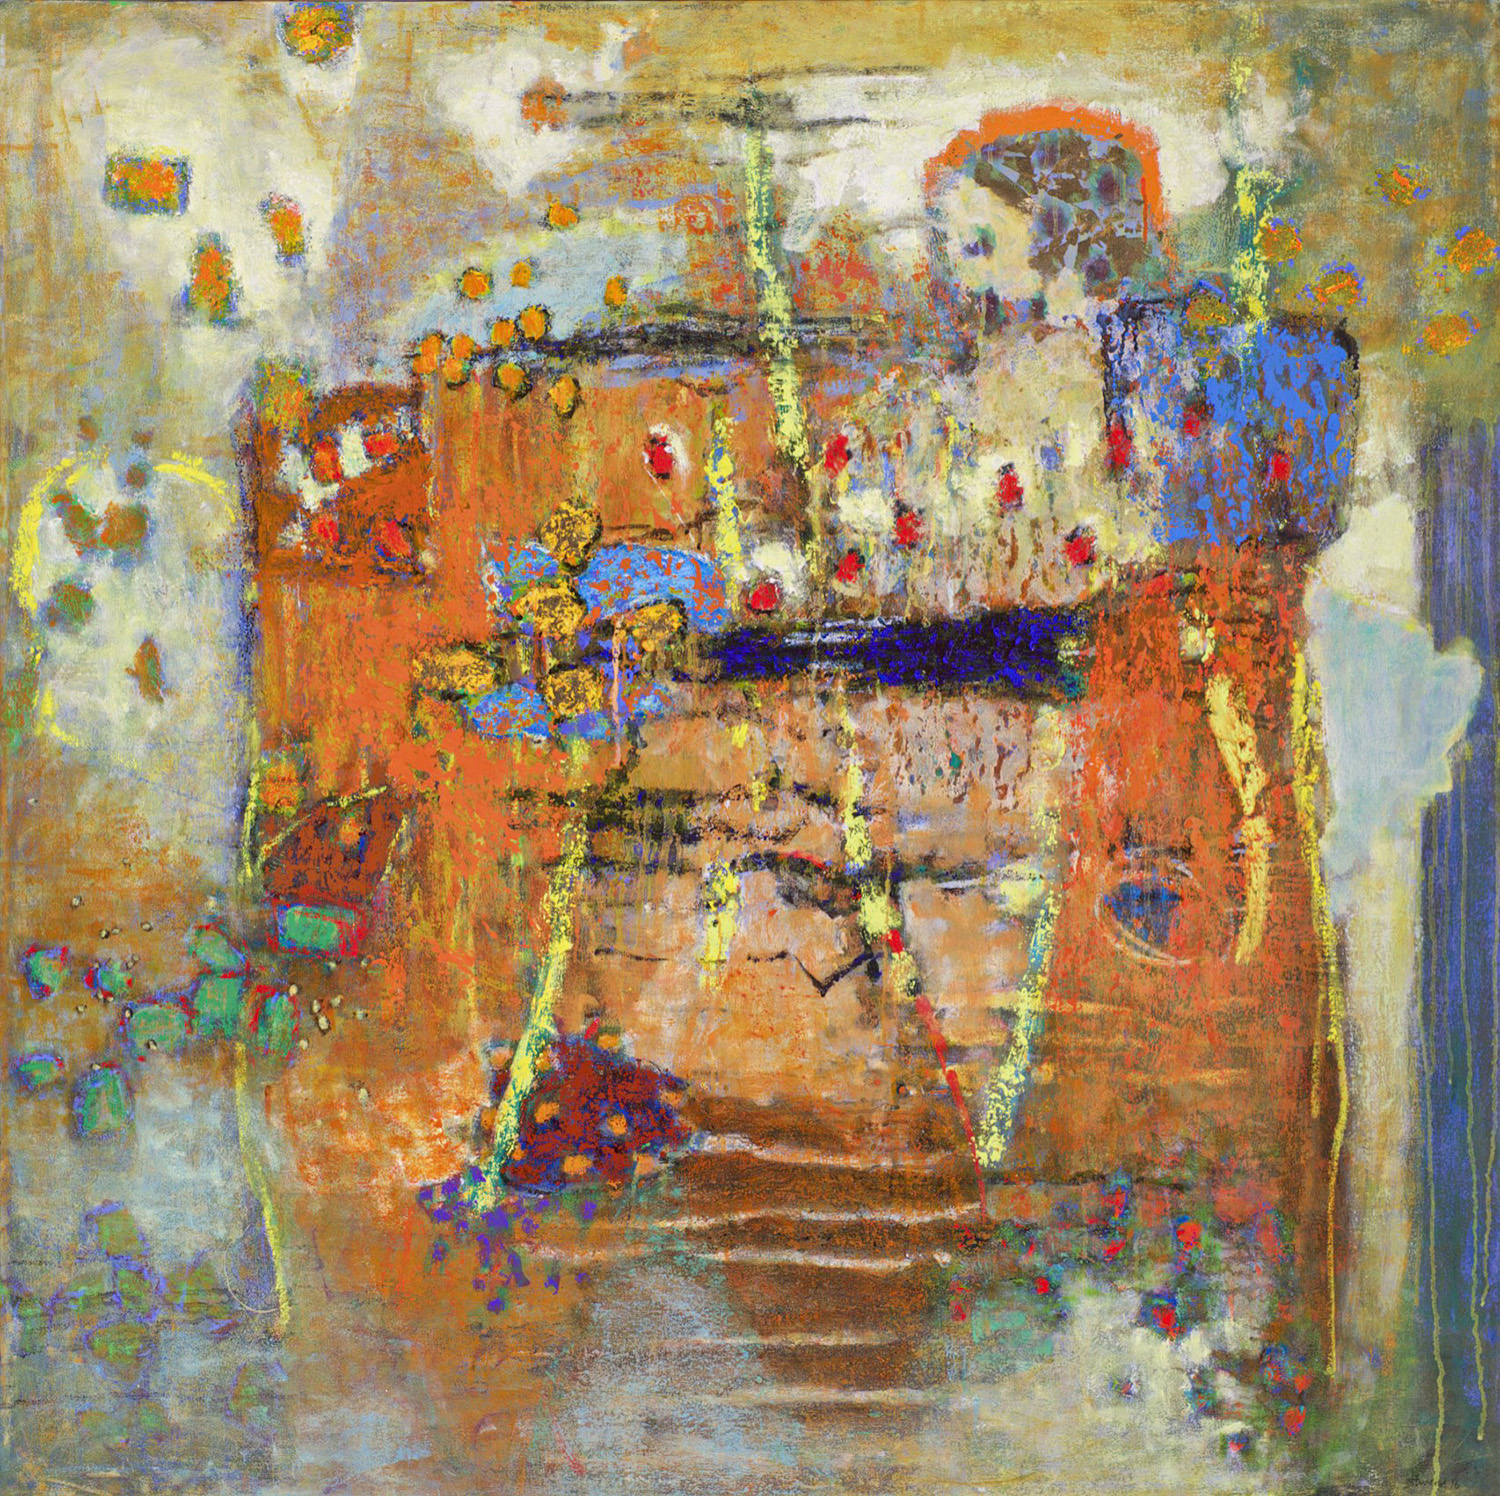 Relevant Patterns   | oil on canvas | 48 x 48"